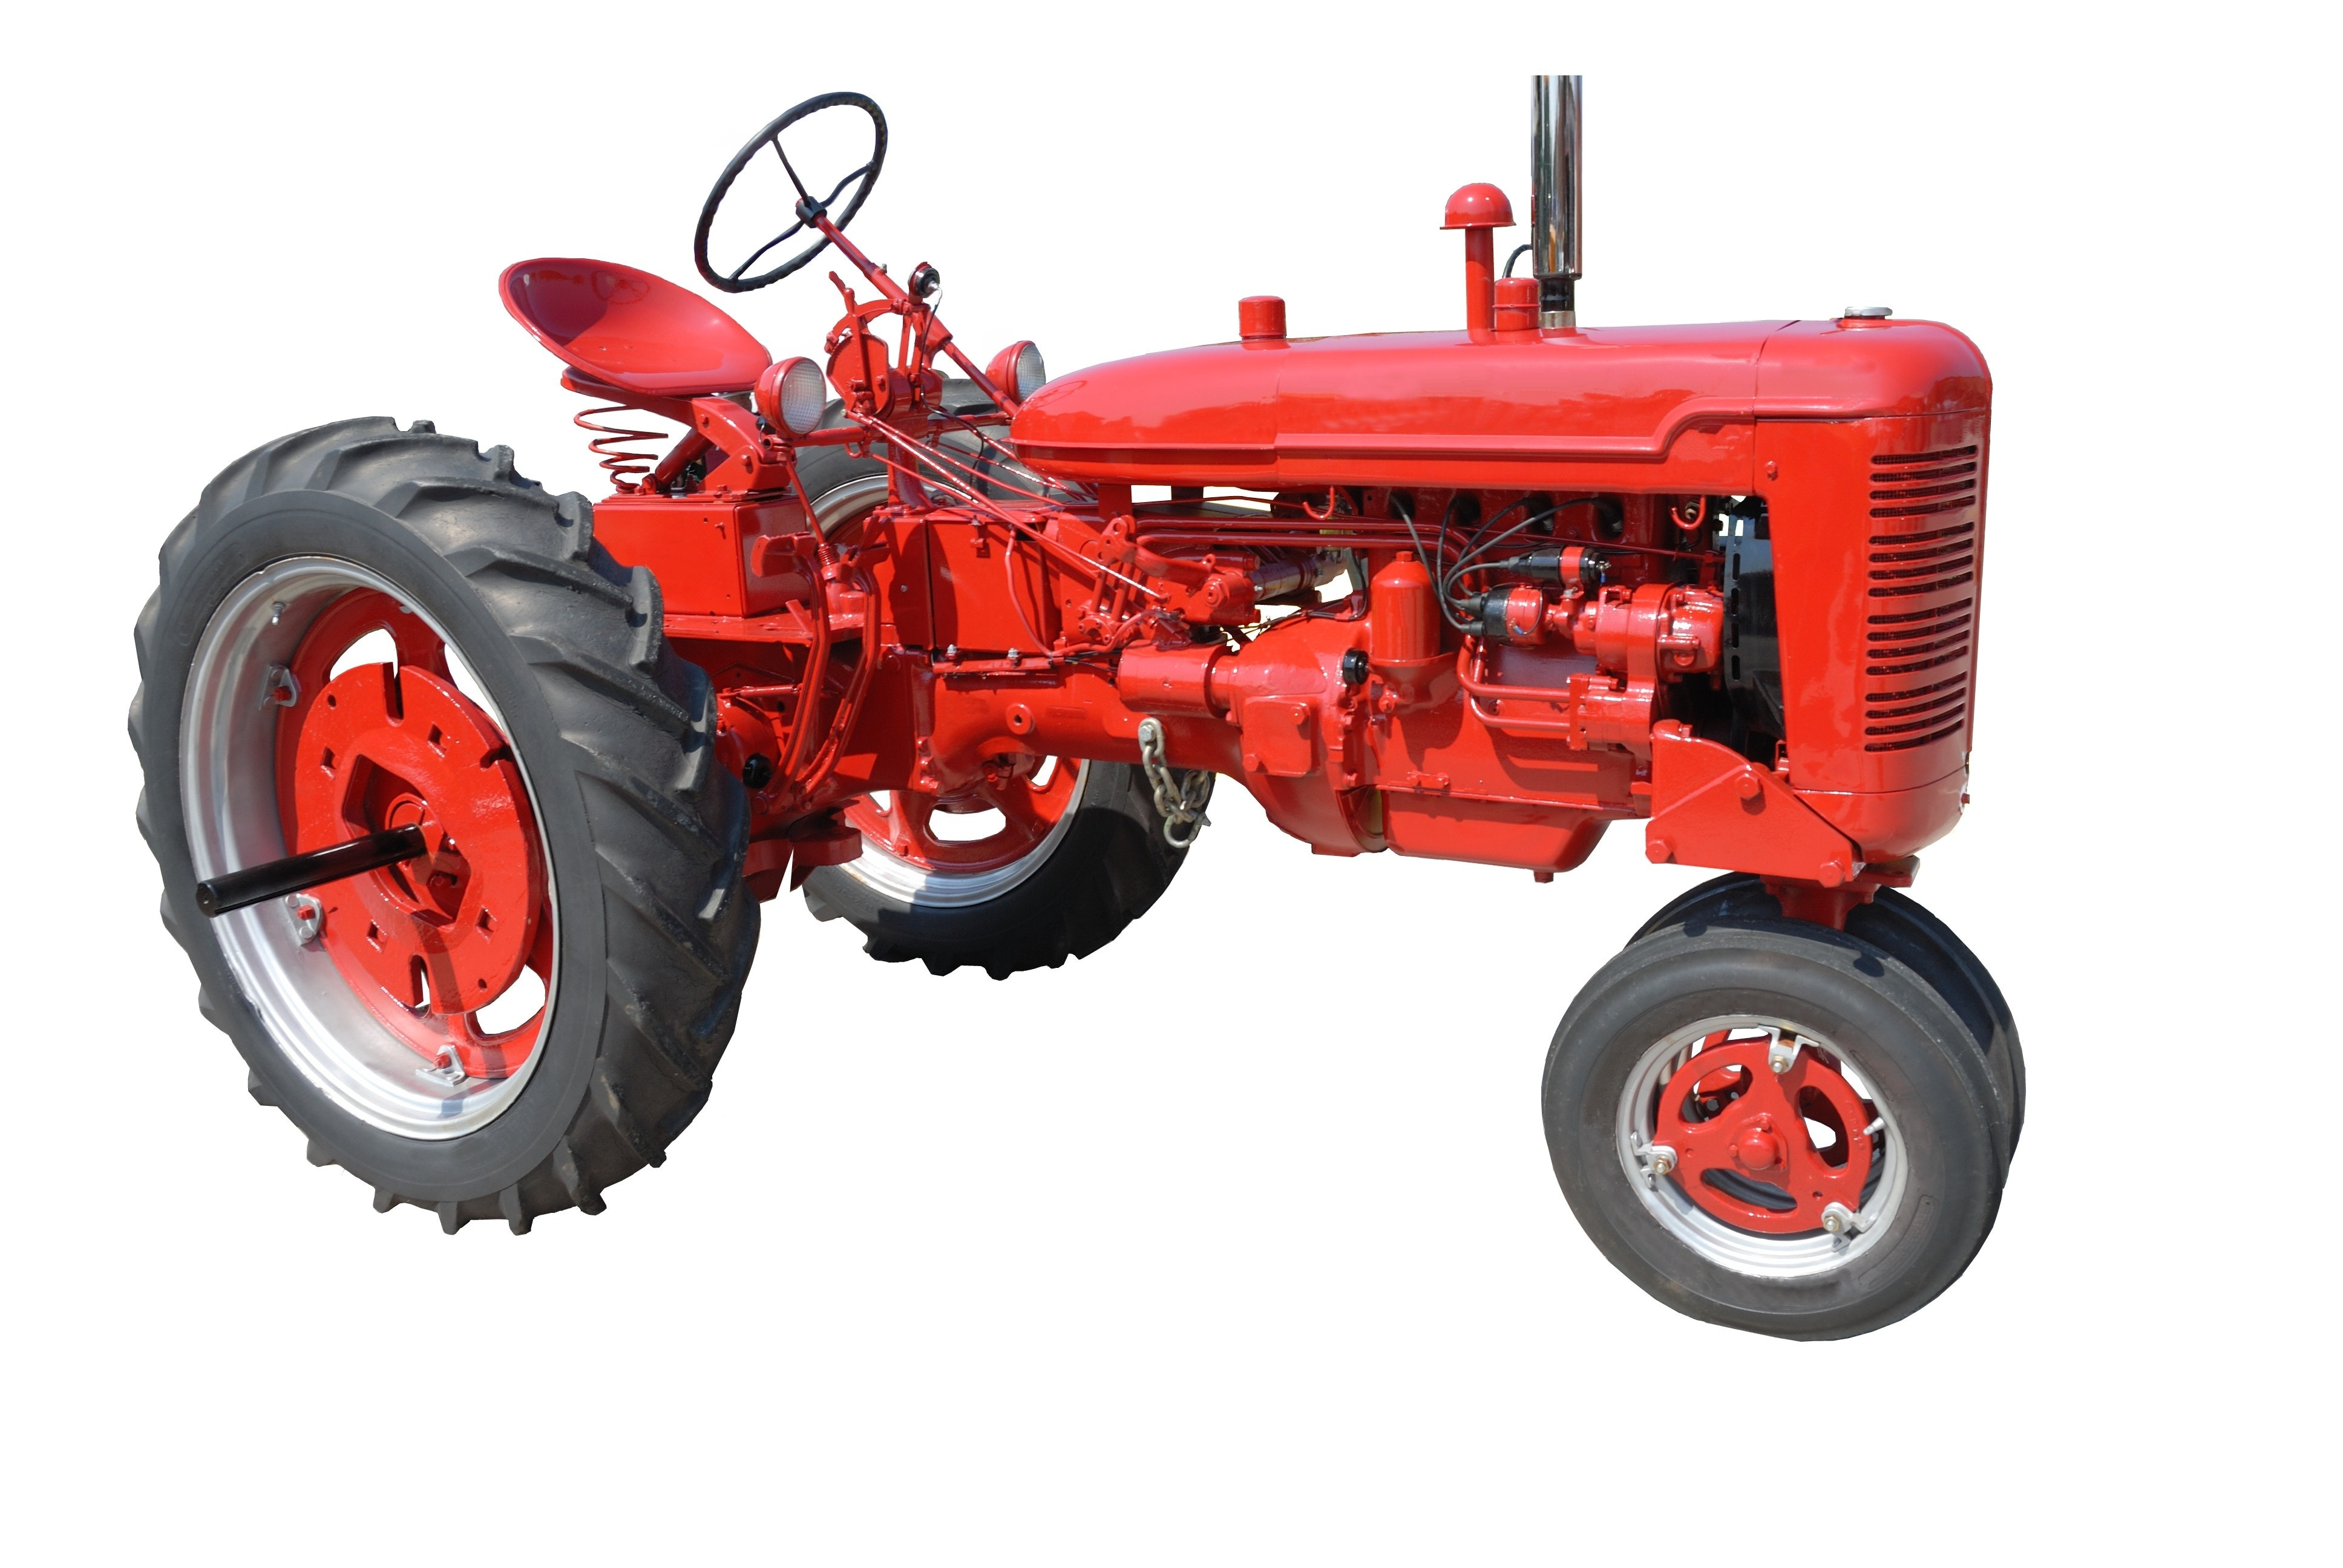 Red Tractor, Automobile, Automotive, Drive, Engine, HQ Photo